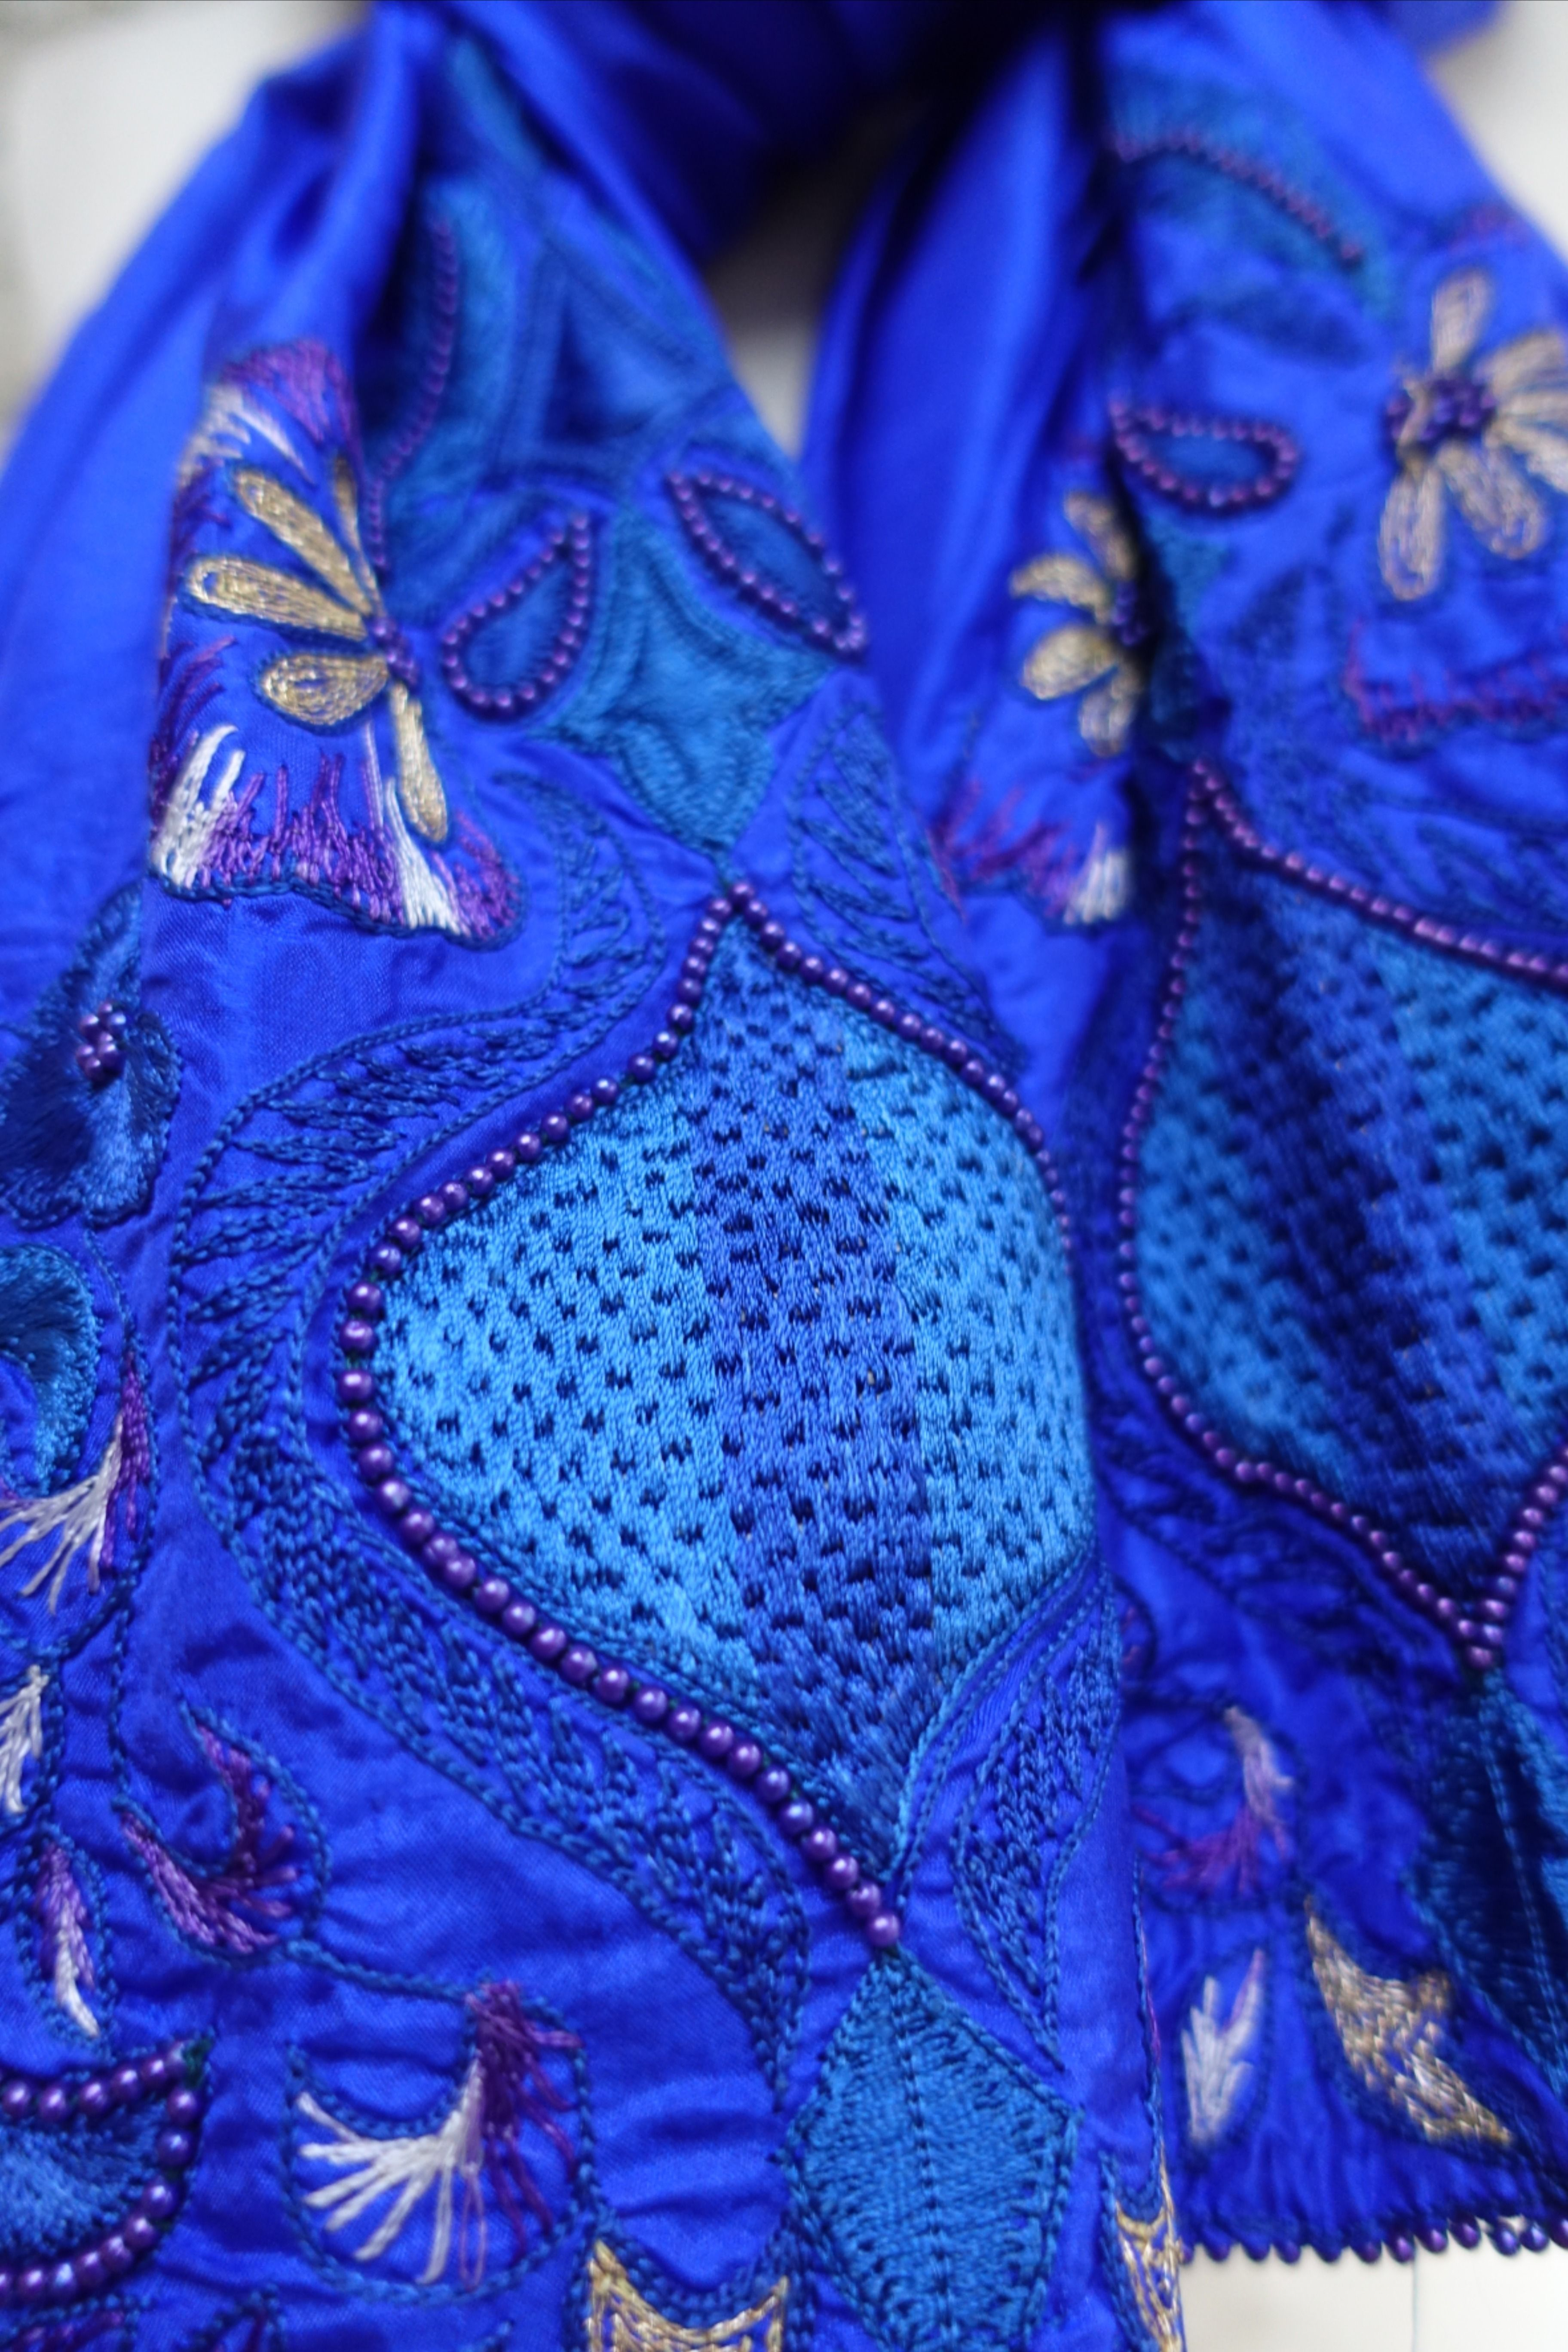 This is a beautiful piece of vintage purple pure silk over 25 years old.  It has beautiful embroidery in shades of purple silk thread work, gold tilla detailing and fine hand beading. . Swipe right to see the shawl.  . #indiansuitcompany . #purple #embellishments #goldwork  #goldworkembroidery #vintageshawl #vintageshawls  #tillawork    #embroidery  #traditionalembroidery  #stitchersofinstagram  #embroideryinstaguild  #handembroidery #indiansilk #dupattalove  #dupattaswag  #silkdupatta